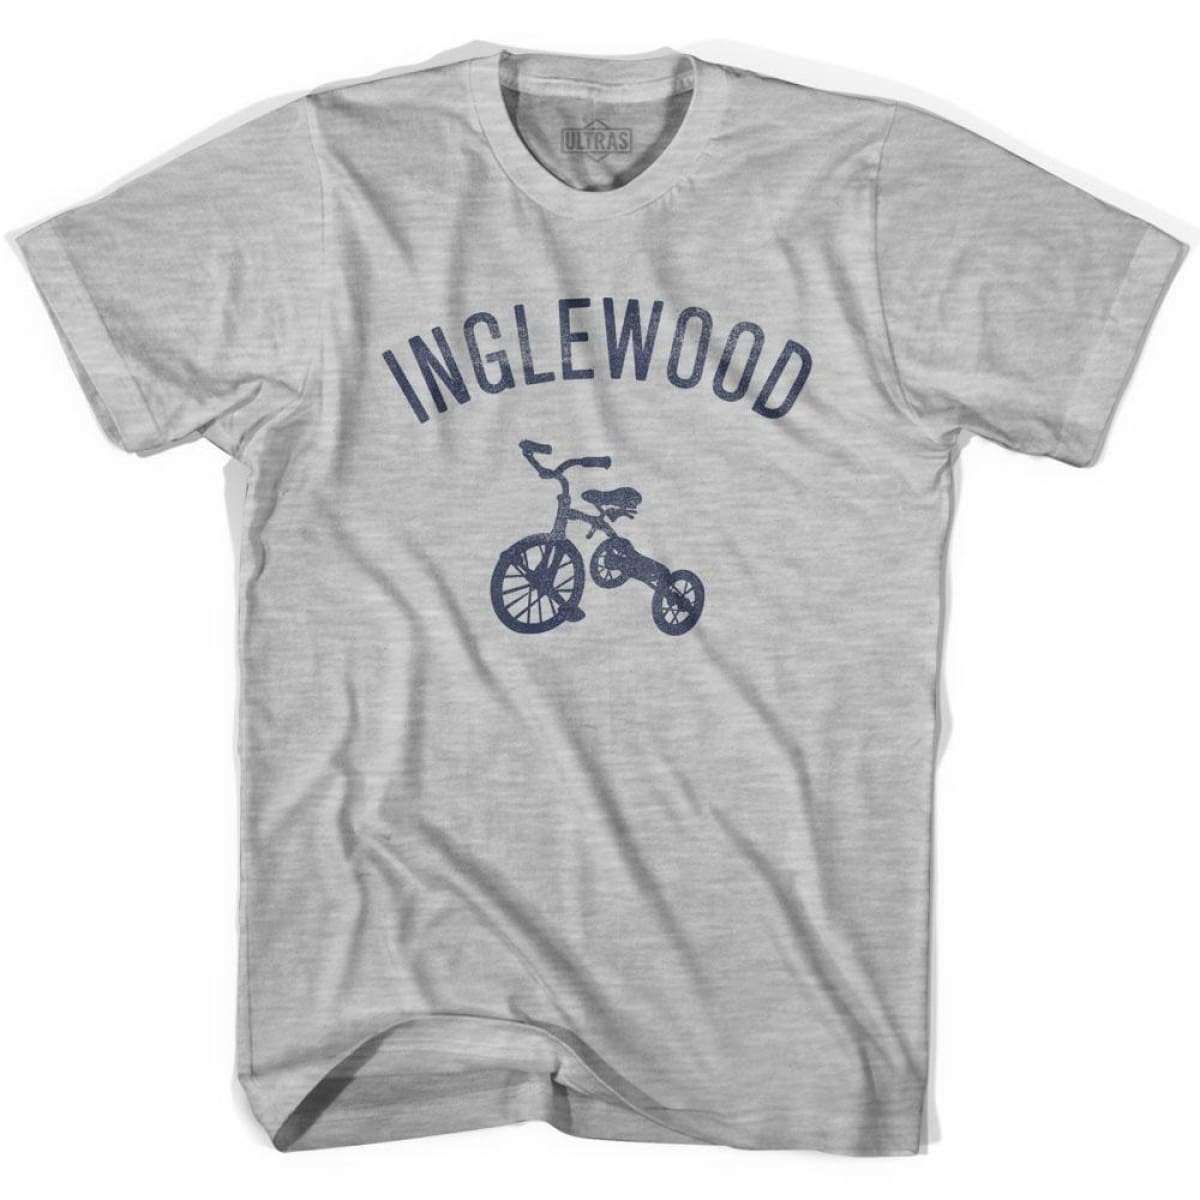 Inglewood City Tricycle Youth Cotton T-shirt - Tricycle City